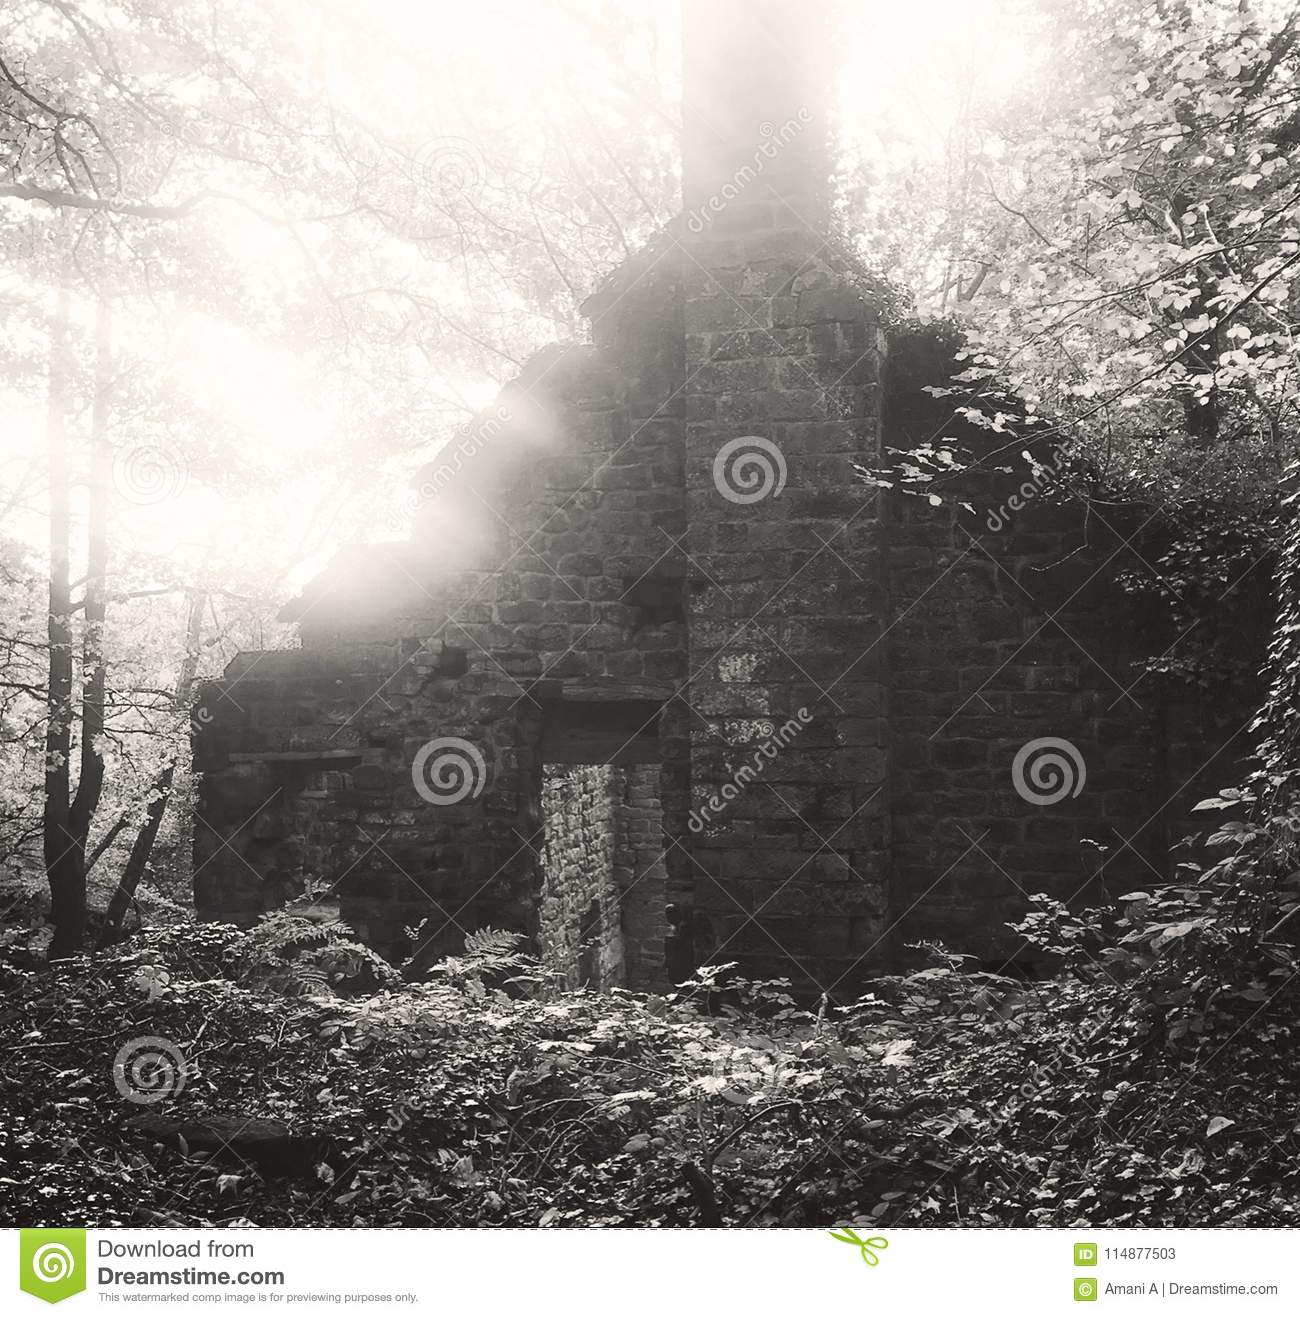 An old derelict mill building in the woods